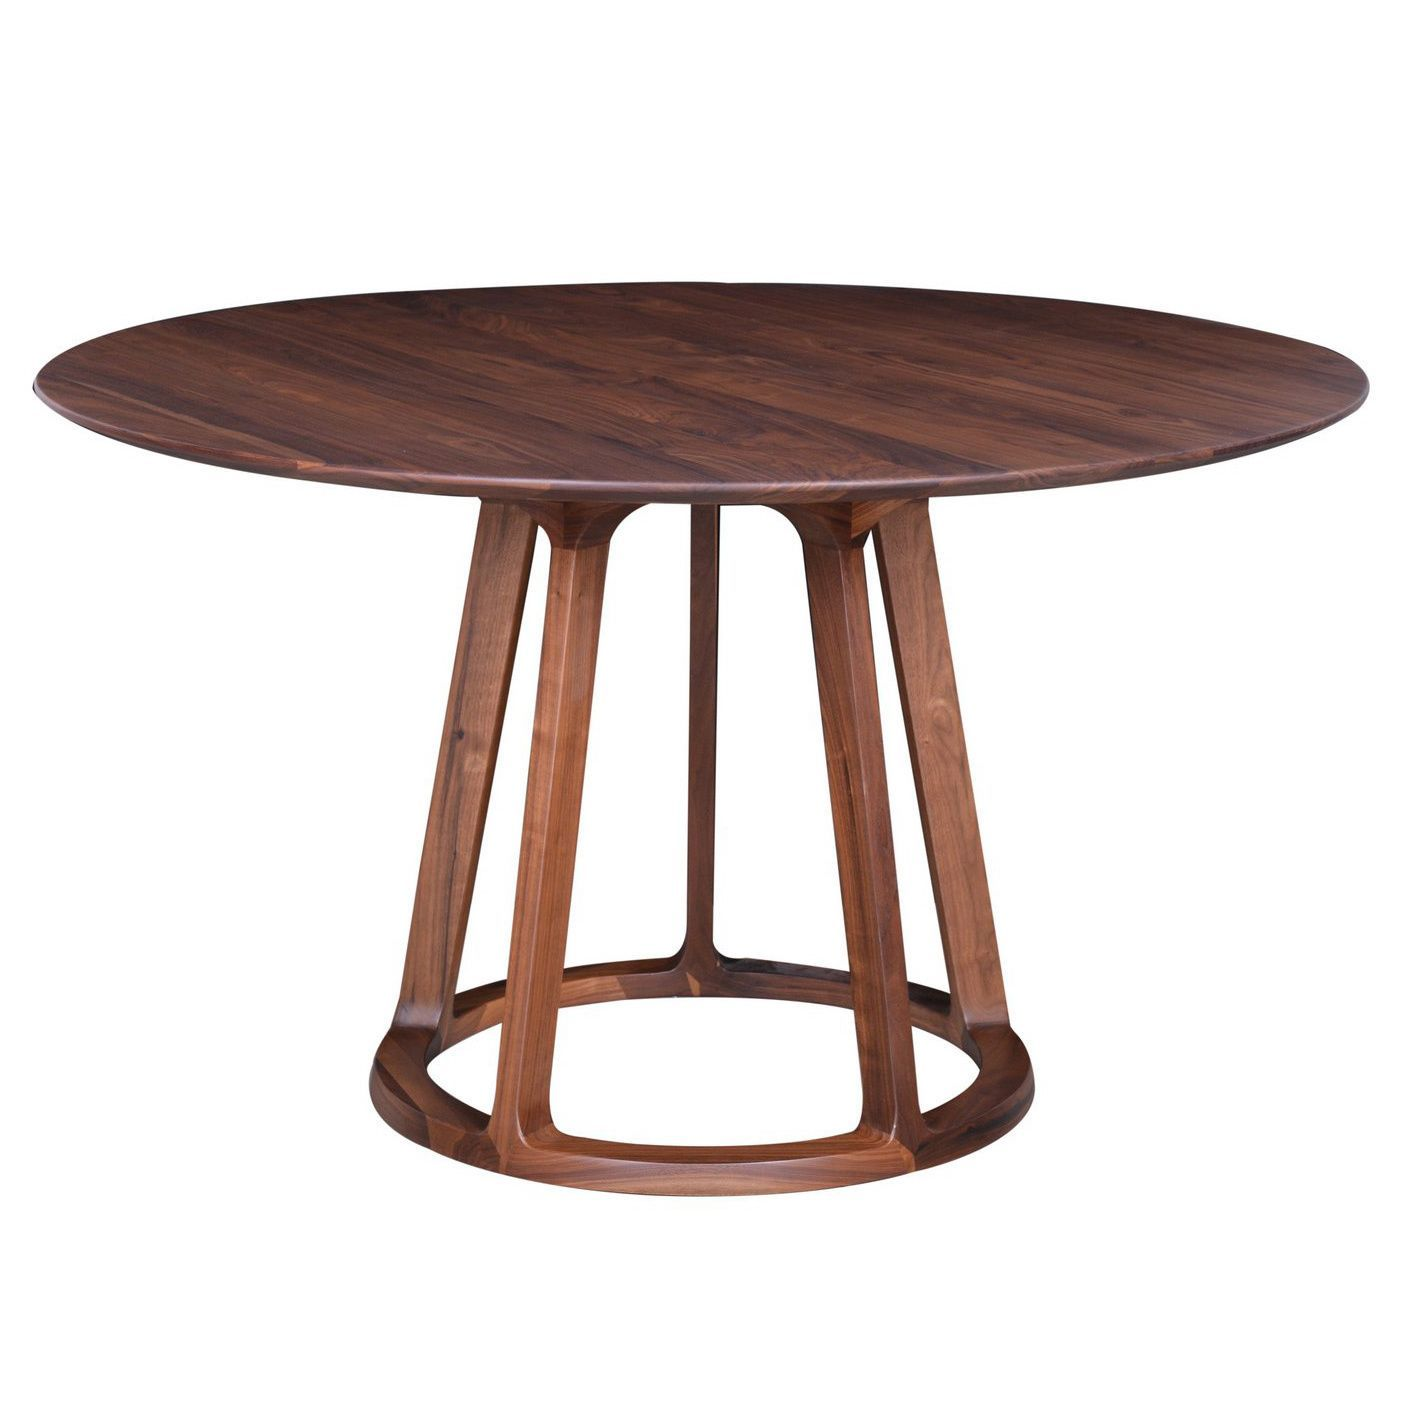 this solid american walnut table features a highly elegant finish